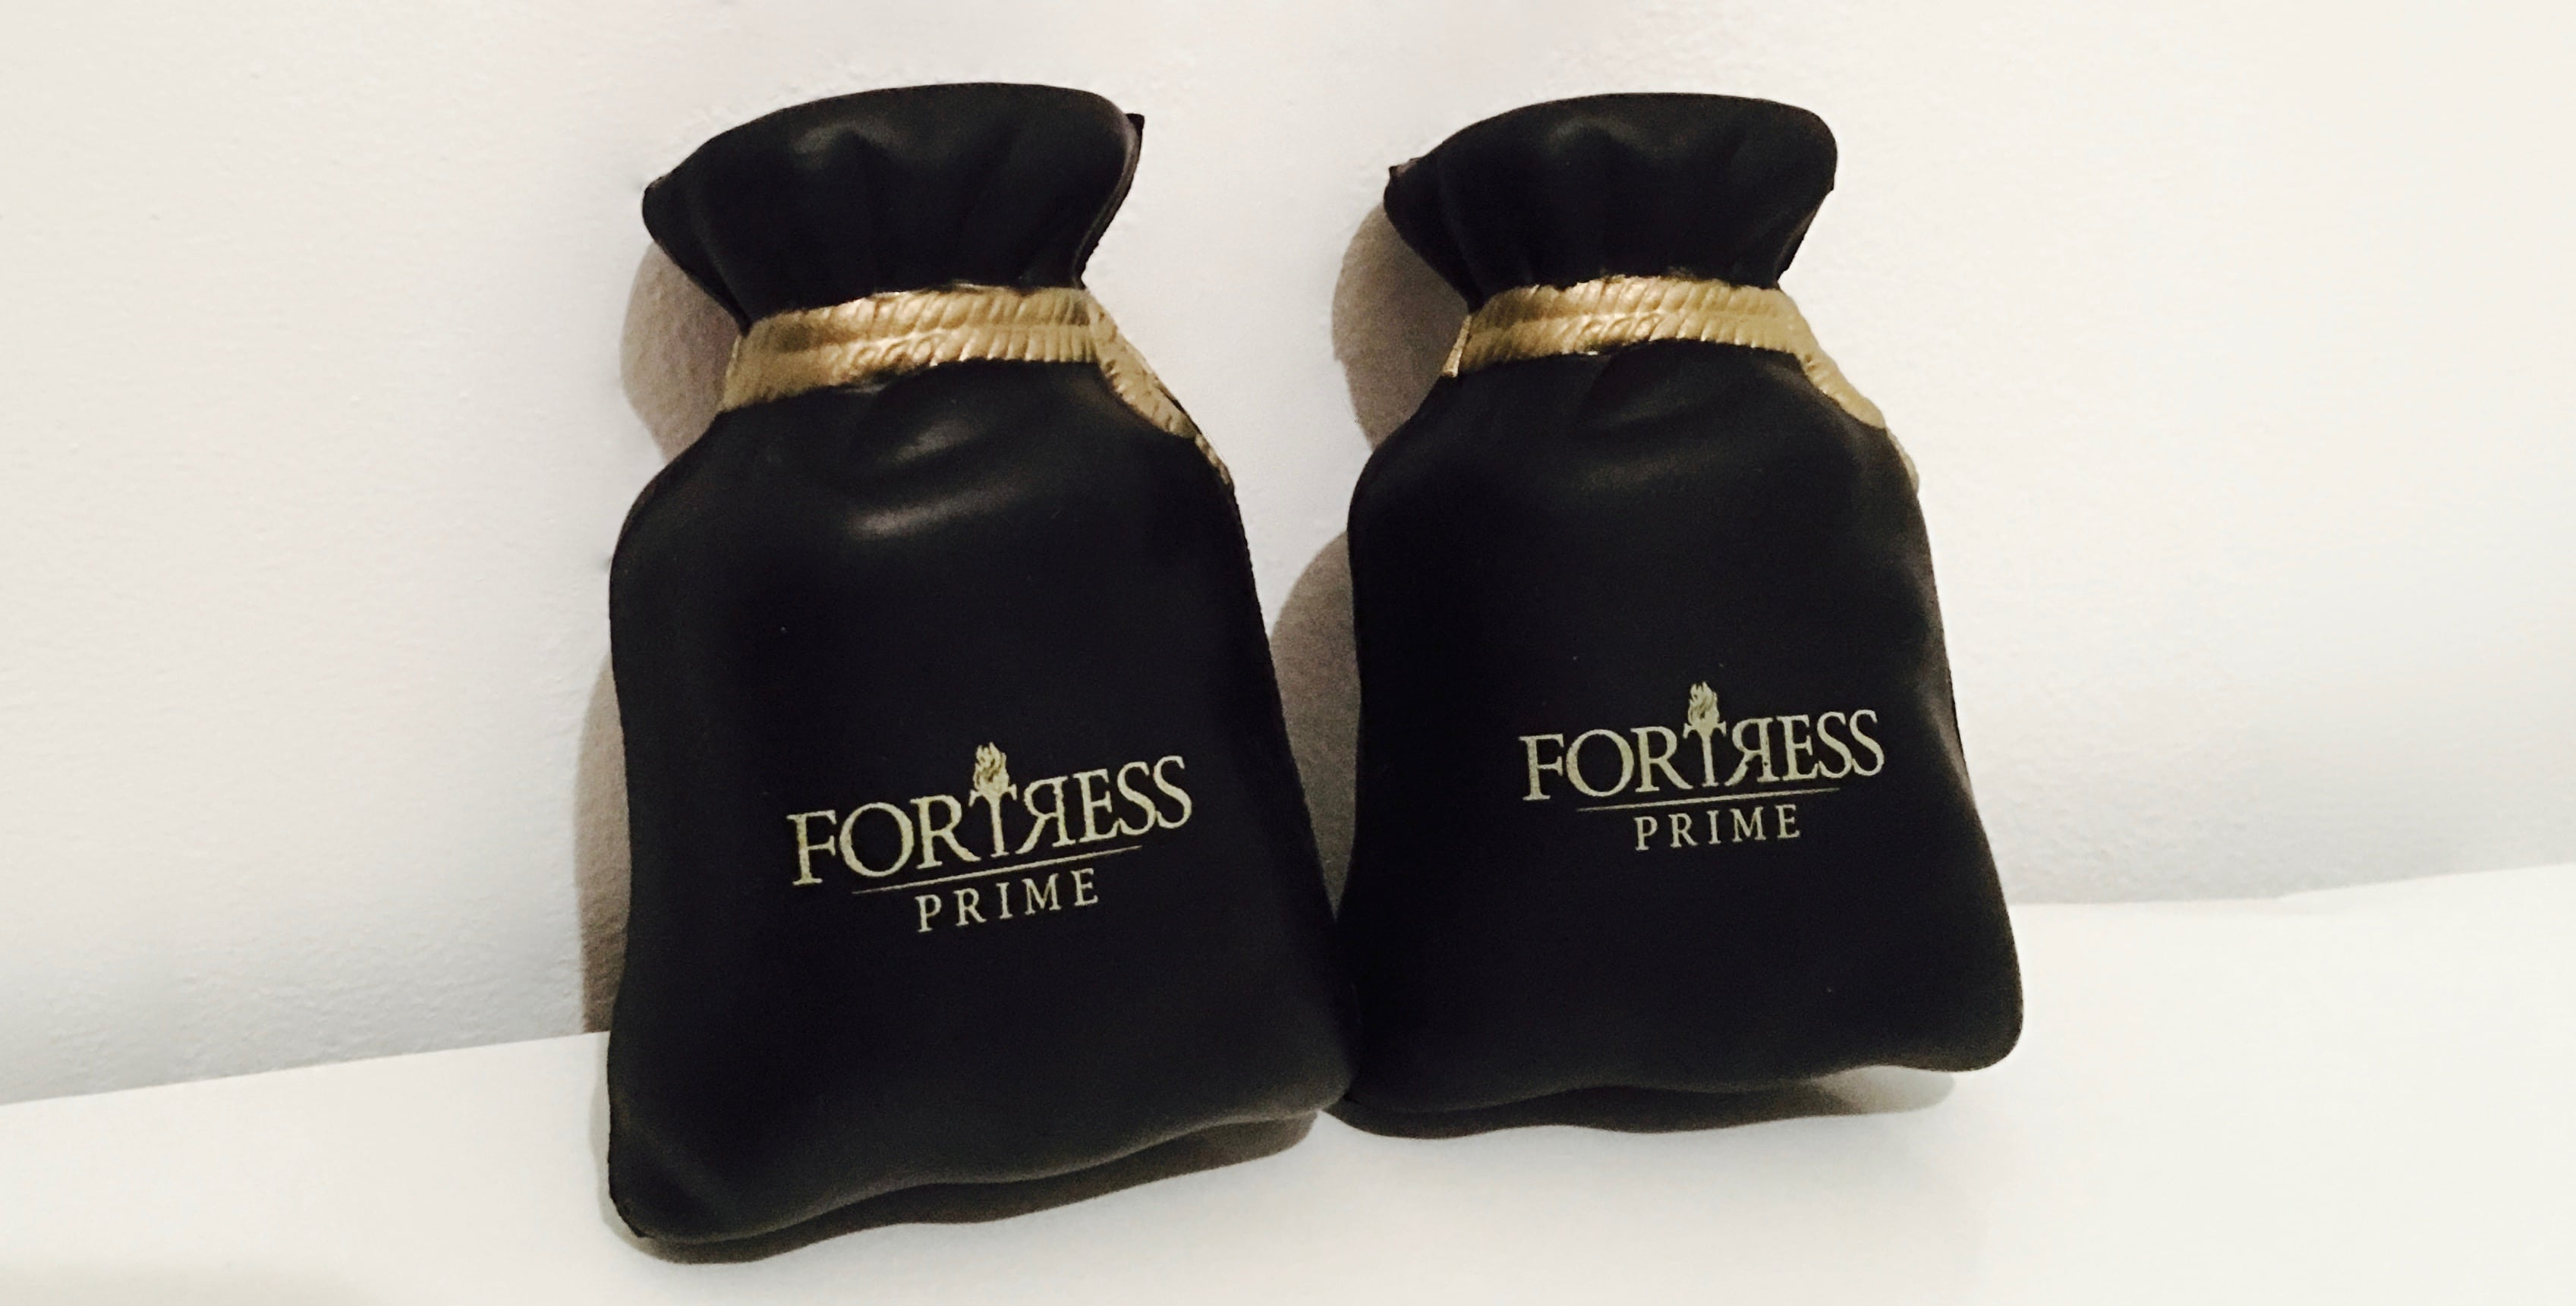 Exclusive: Fortress Capital Investments to Wind Down Fortress Prime